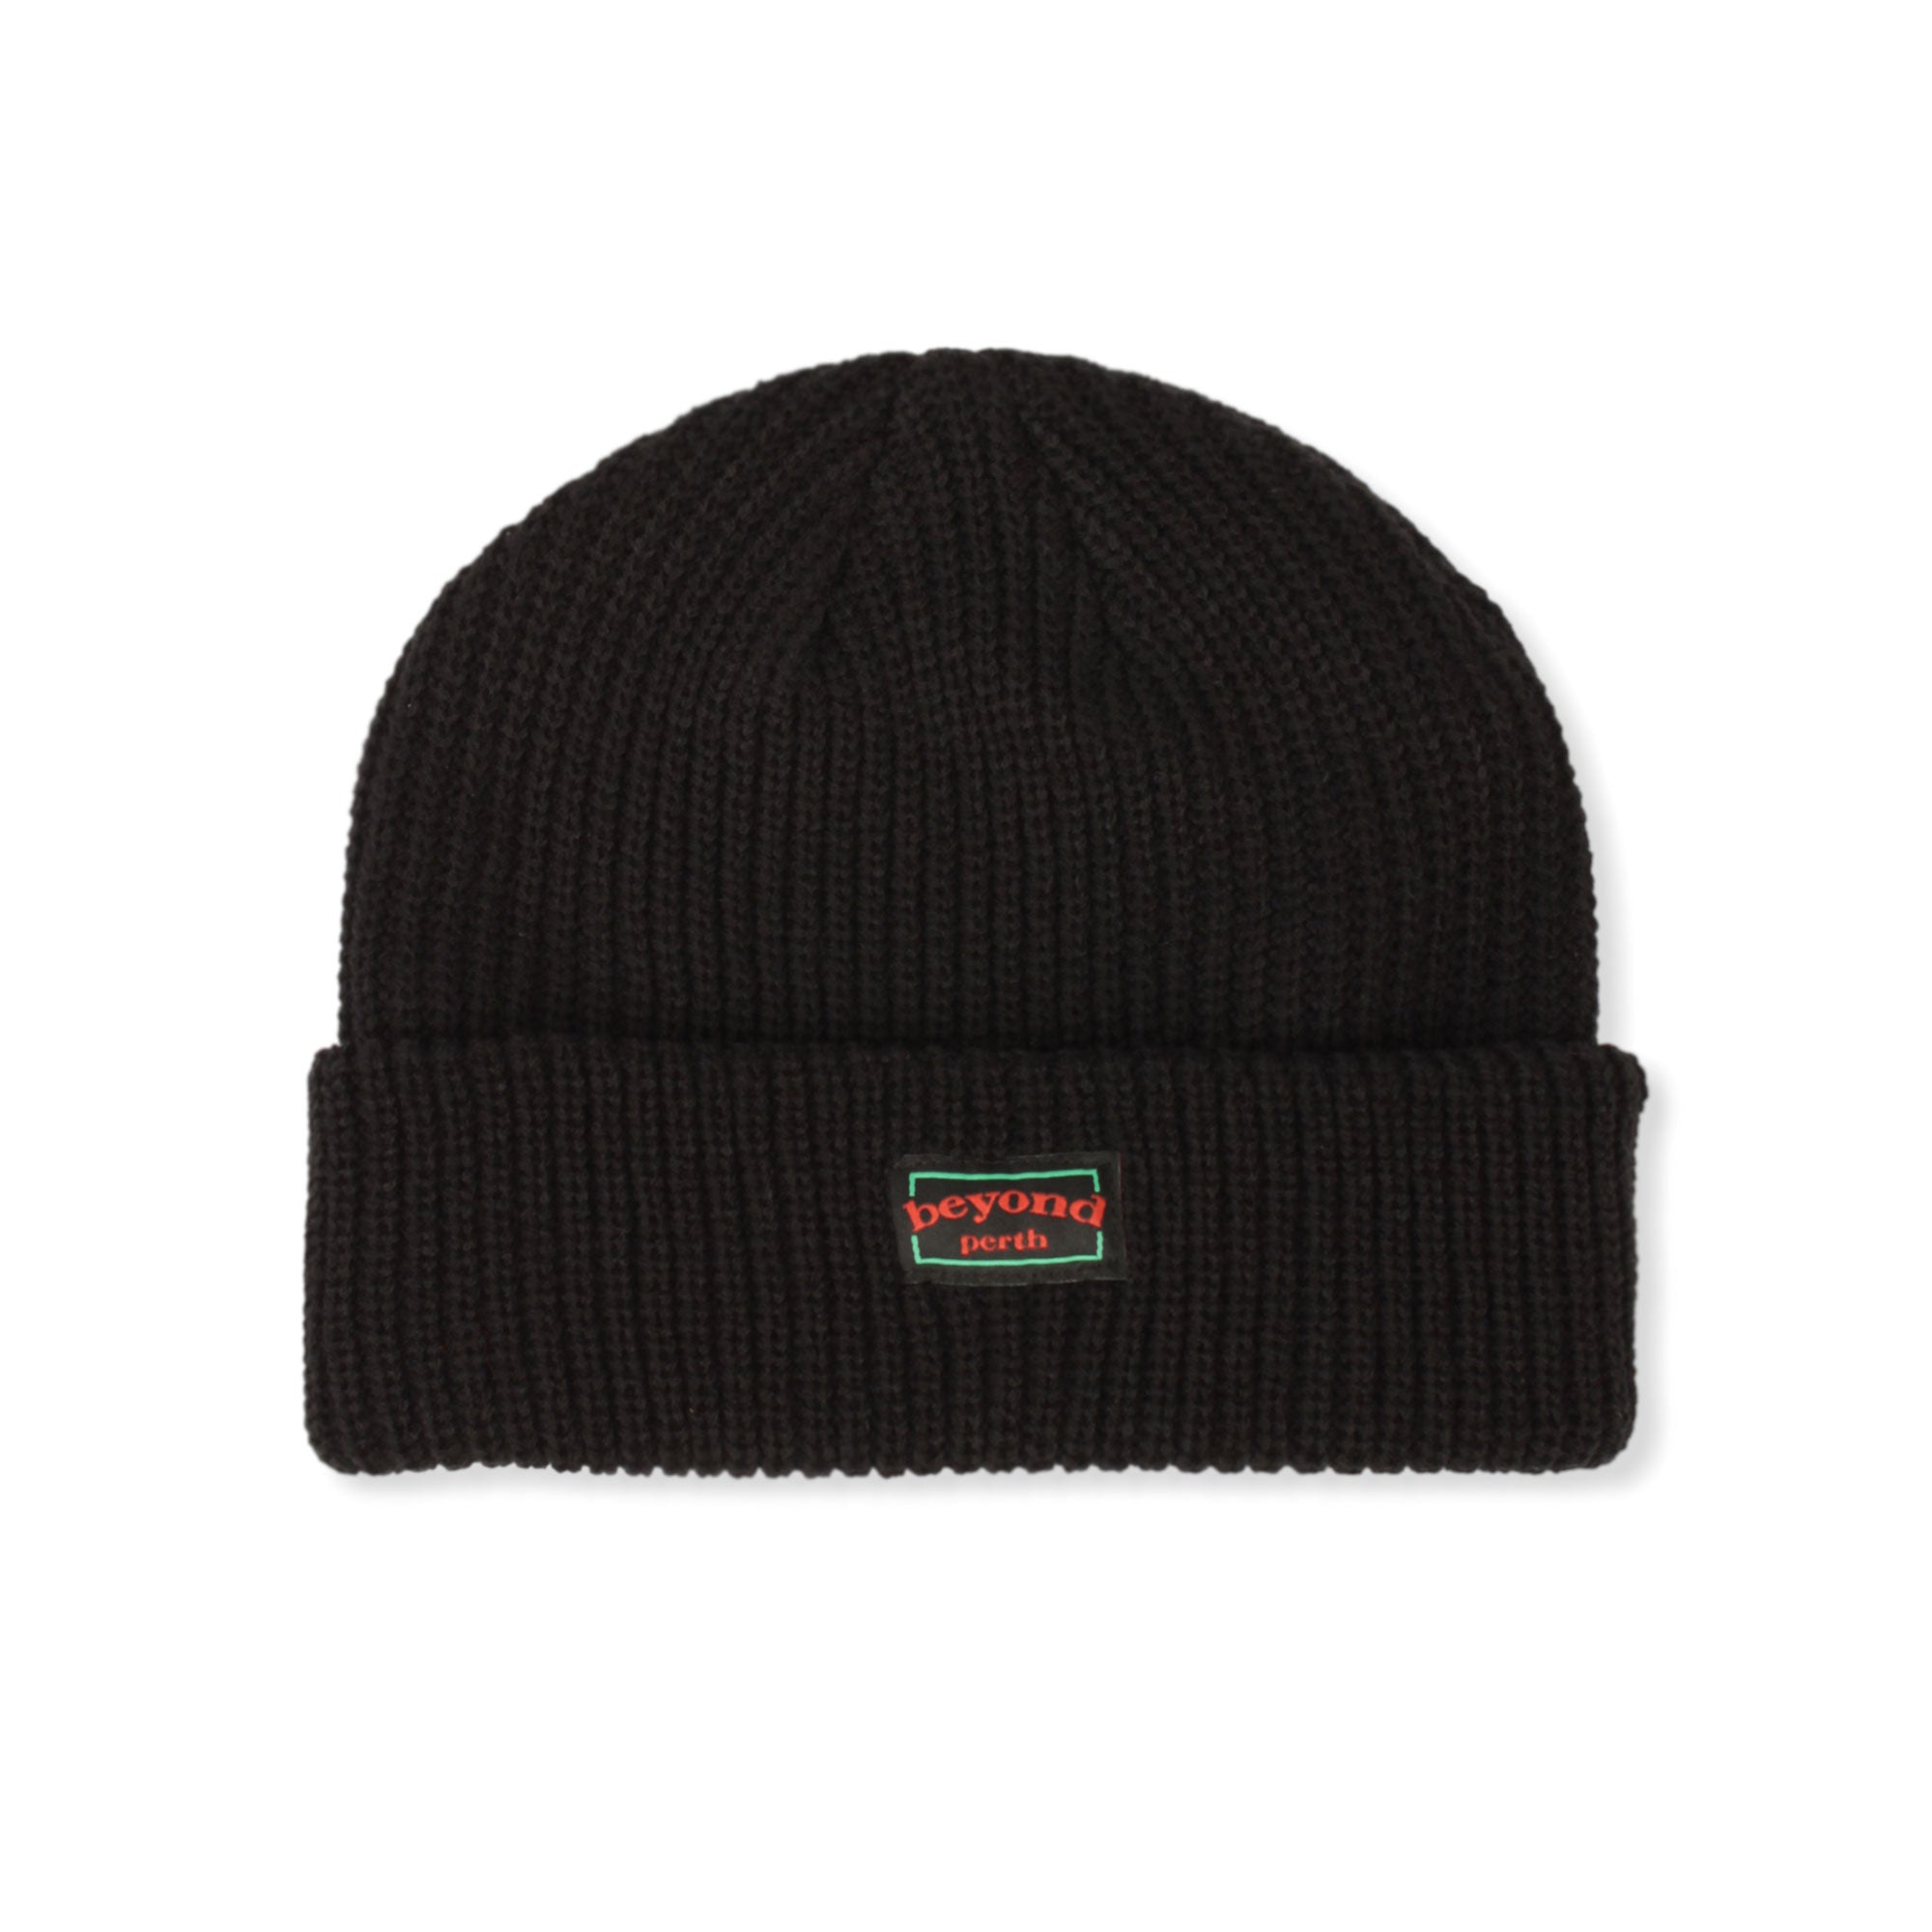 Beyond Extra STD Beanie Product Photo #1